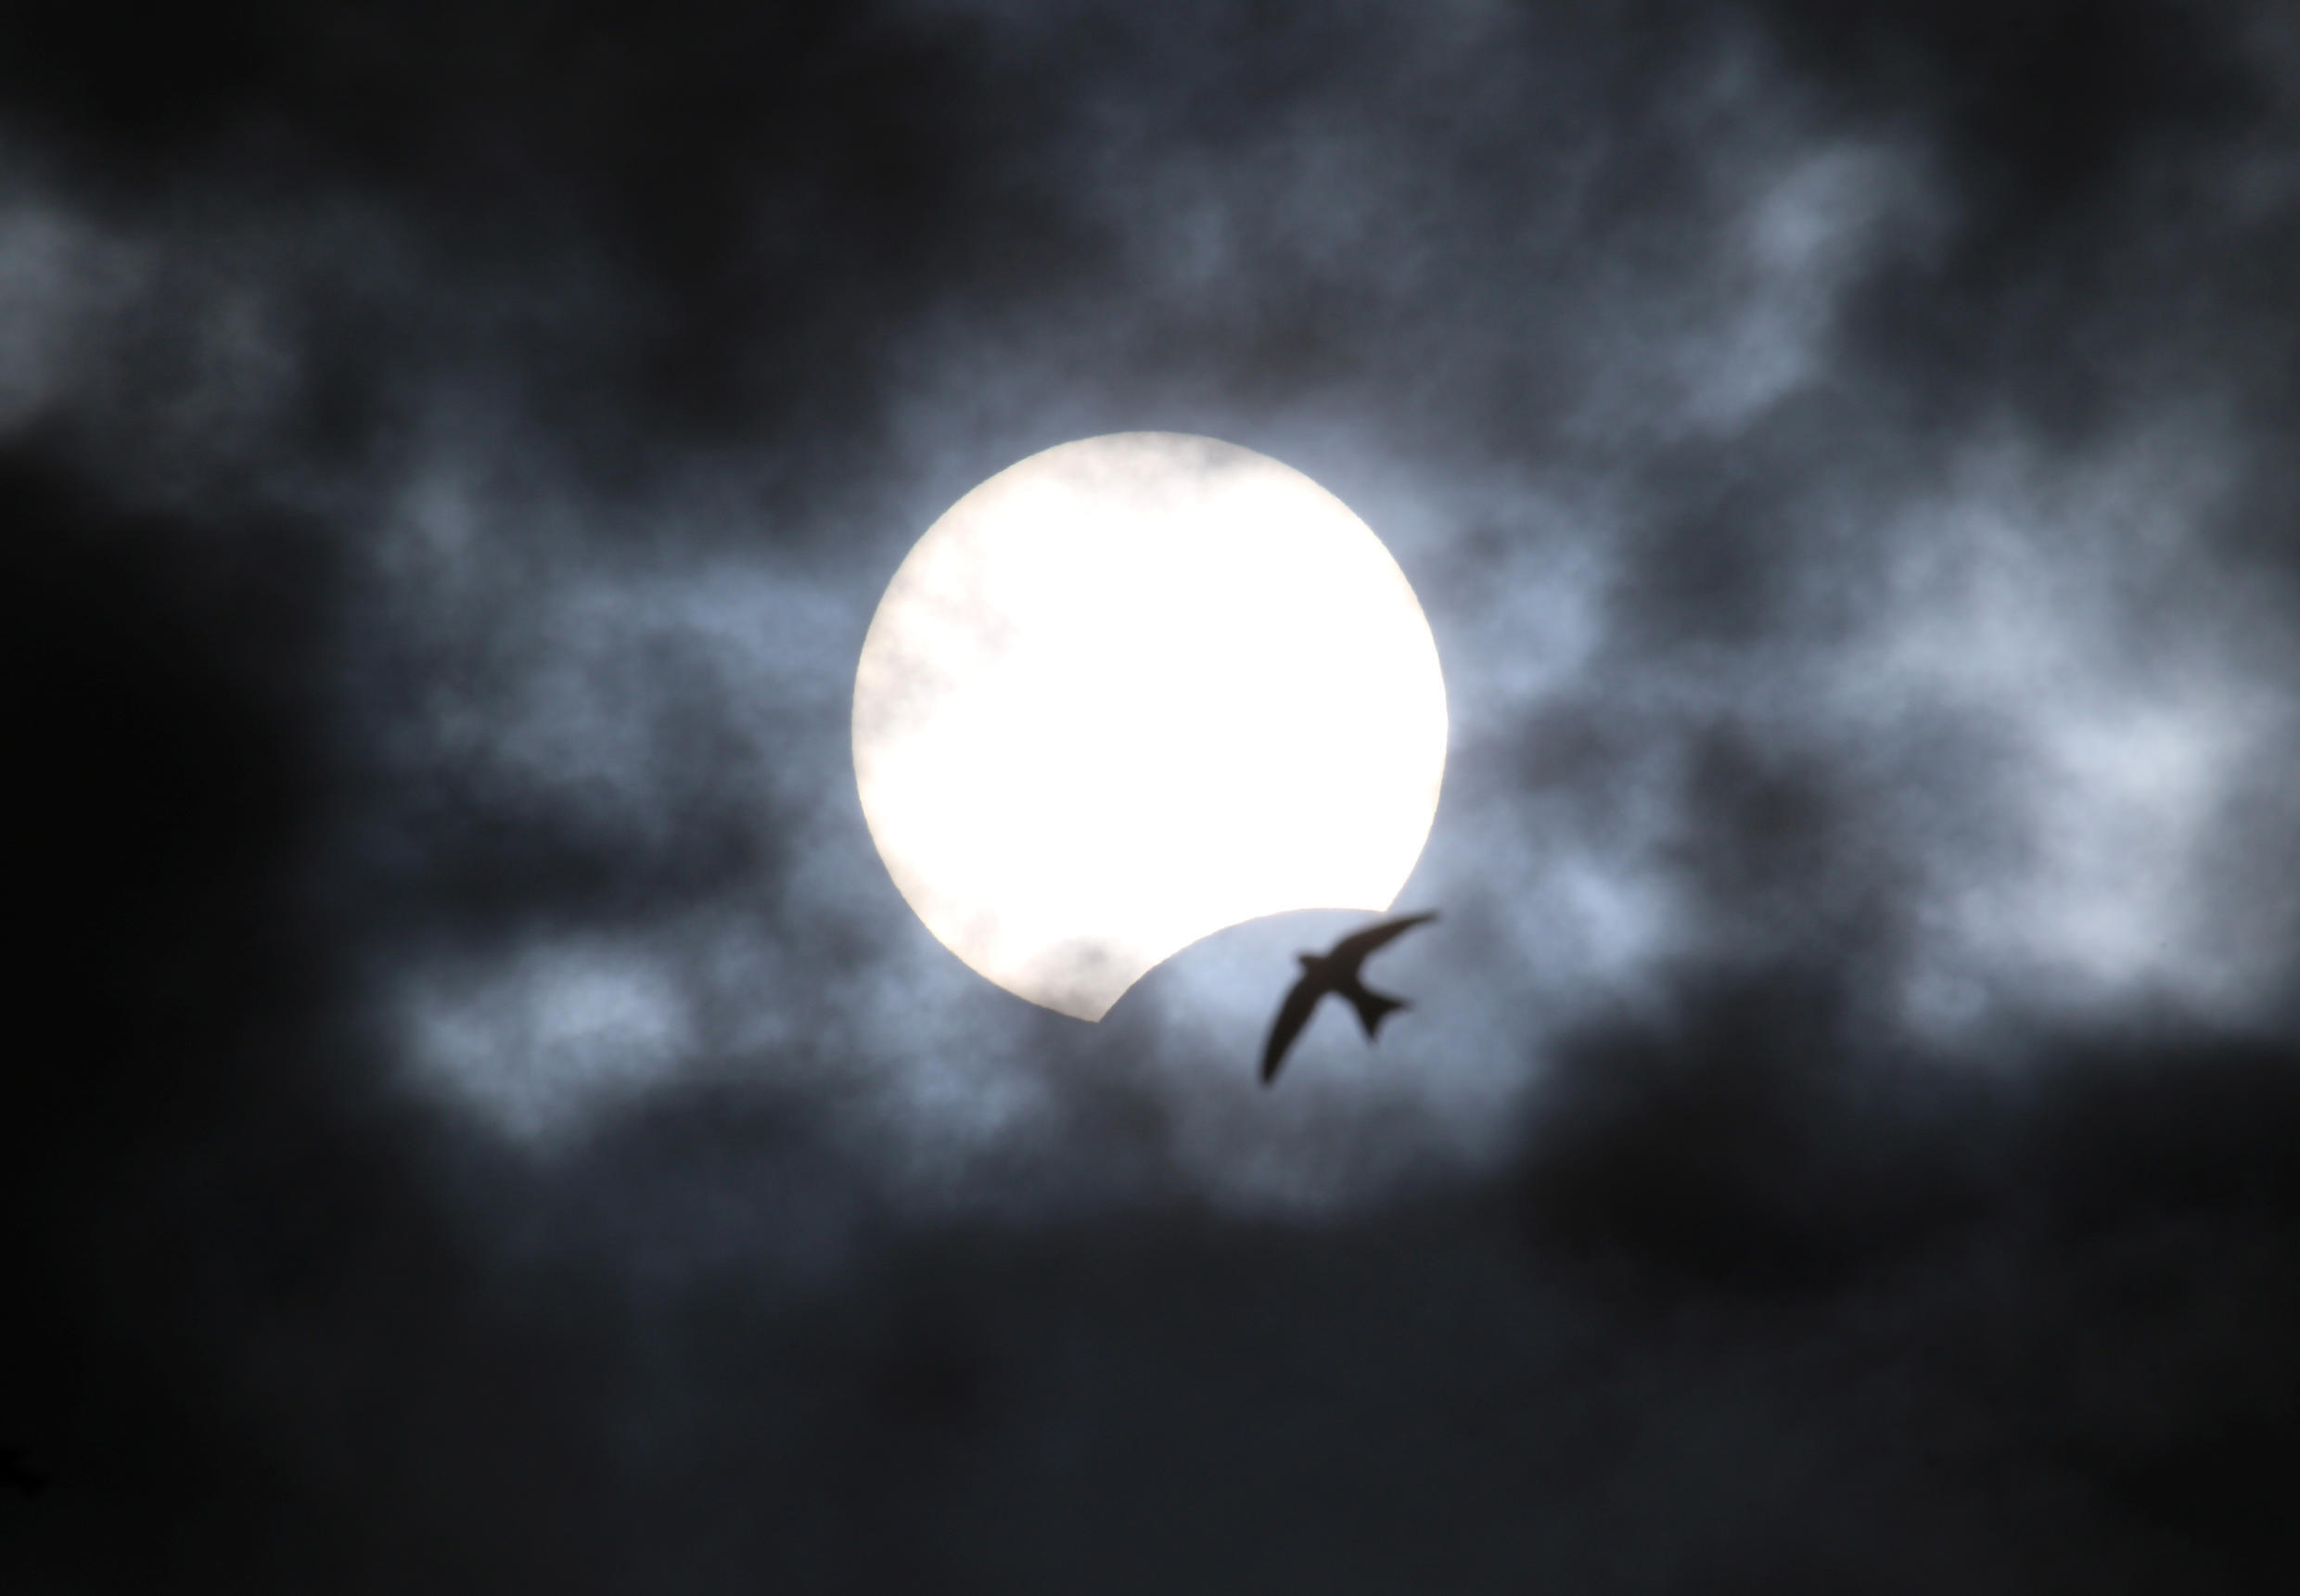 The partial solar eclipse as seen from Yevpatoria, Crimea, on June 21, 2020.